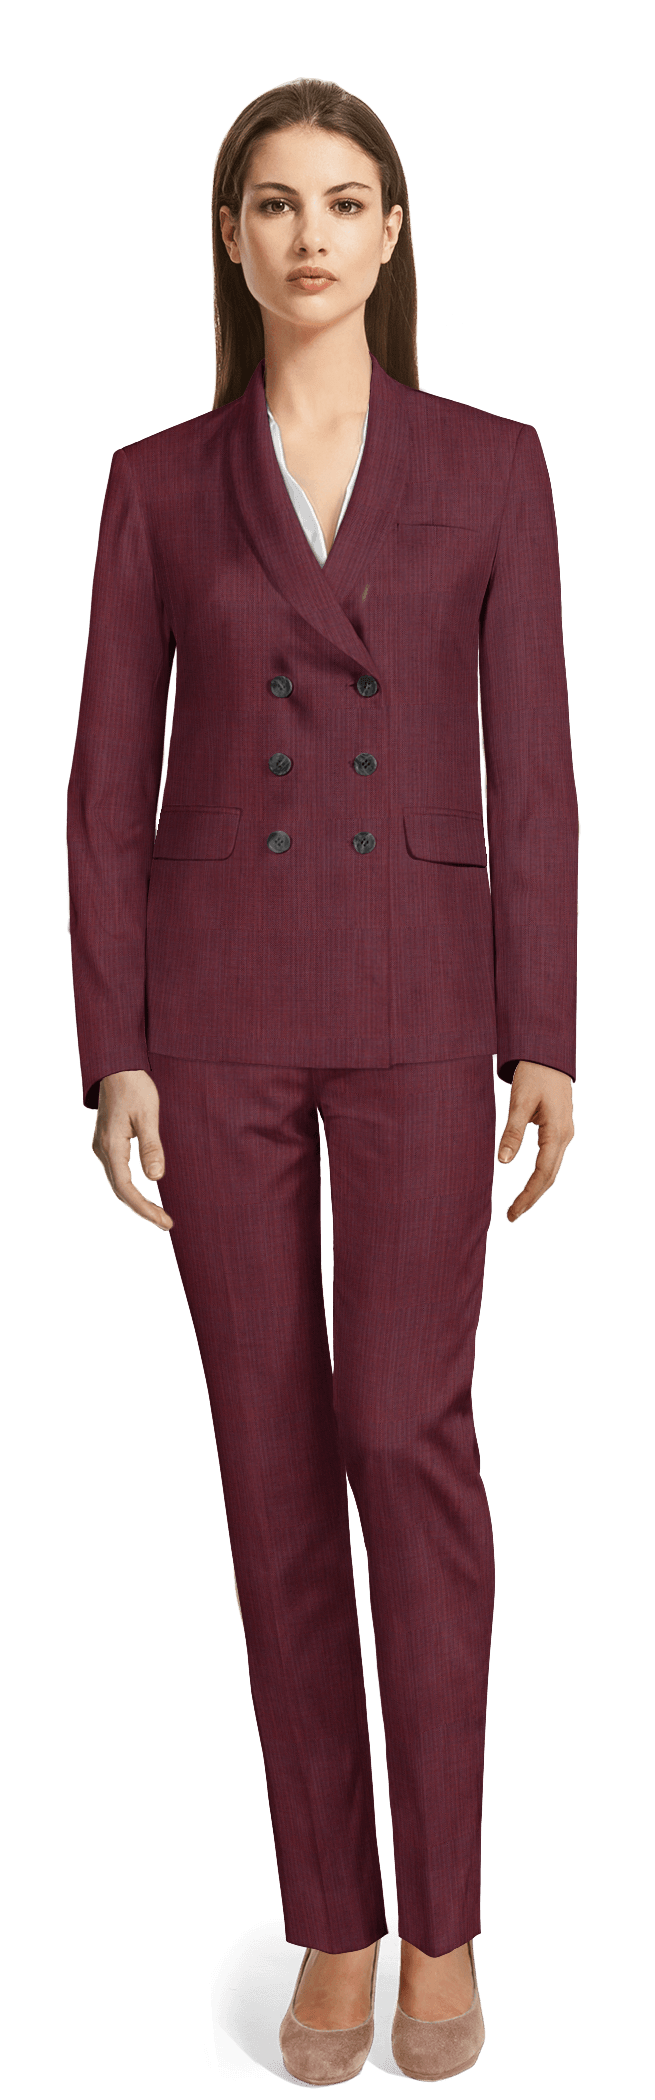 324286d47ed4 OUR WOMEN S PANTSUITS COLLECTIONS. Red Double breasted Wool blend Pant Suit